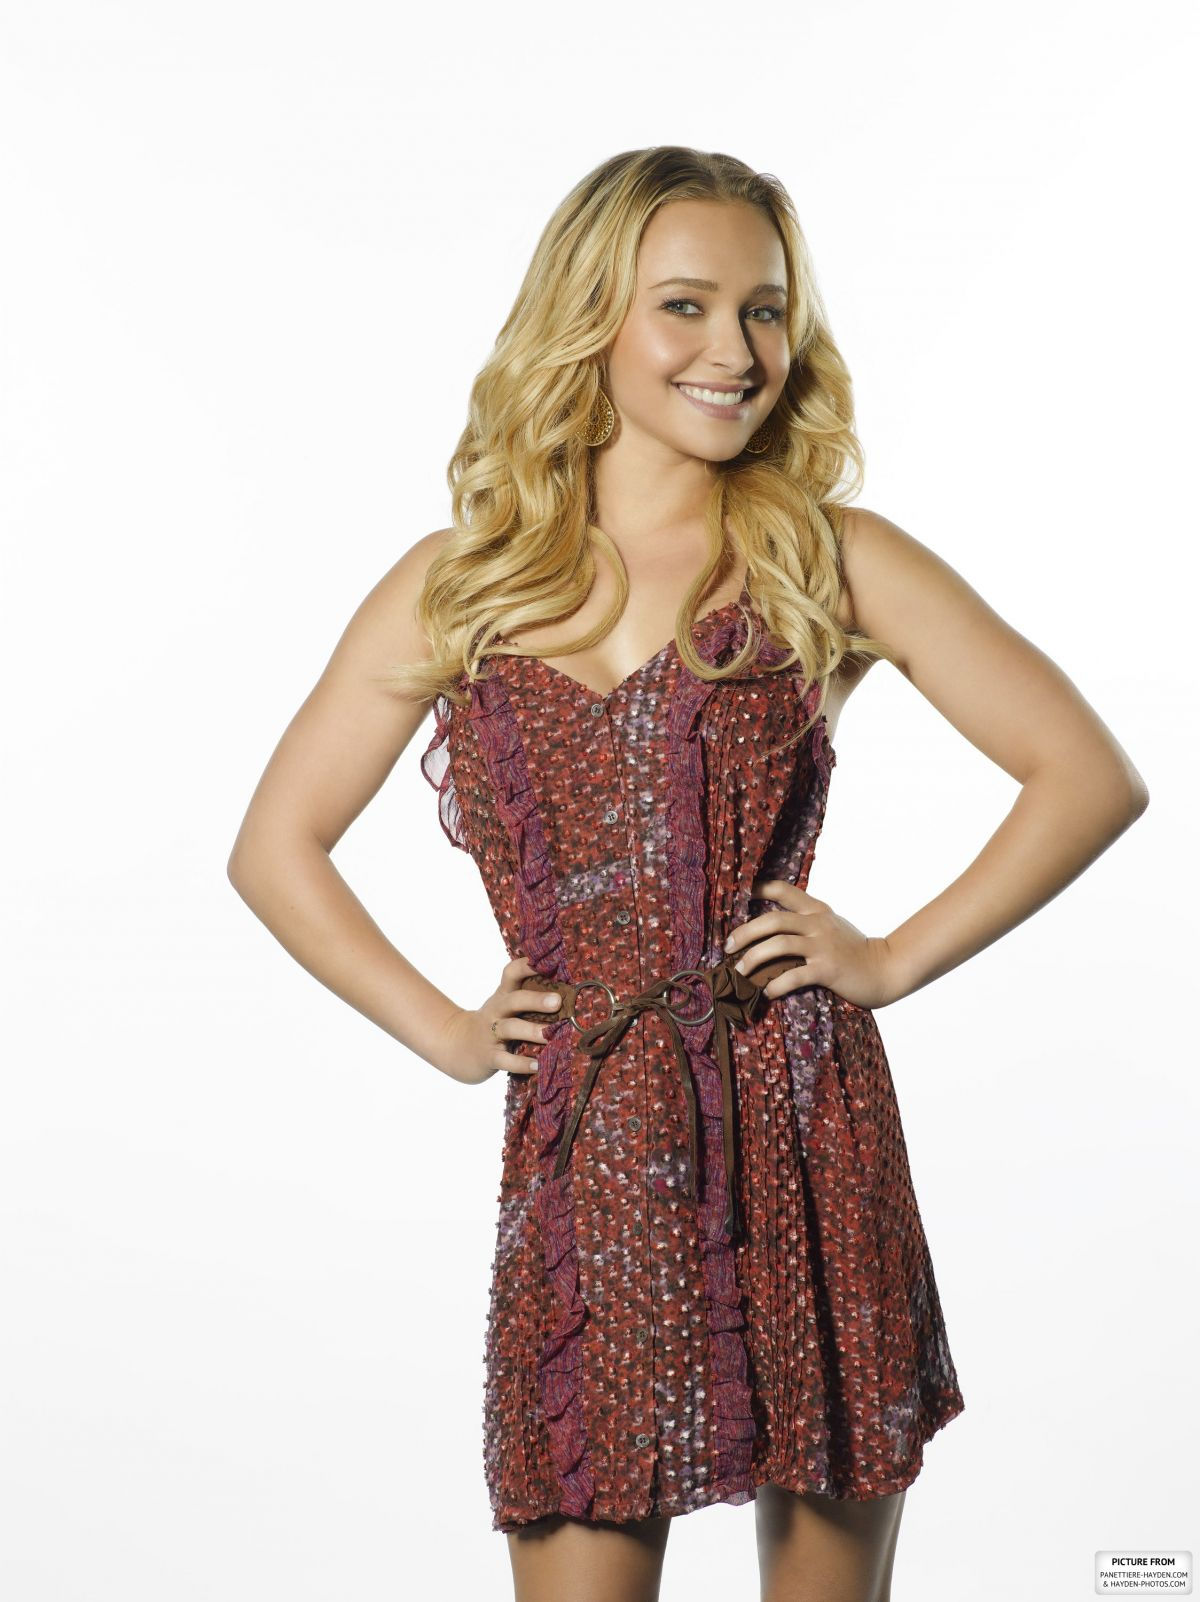 Hayden panettiere nashville season 1 collection - 1 part 9